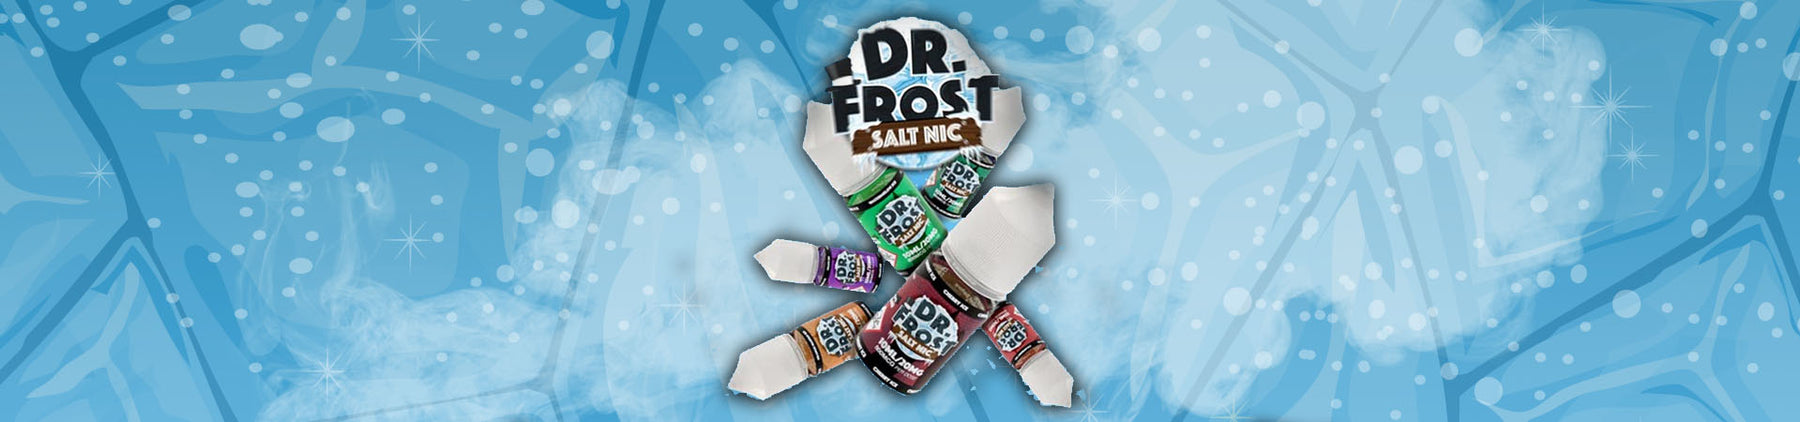 Dr Frost Salt Nic Range! Now Available